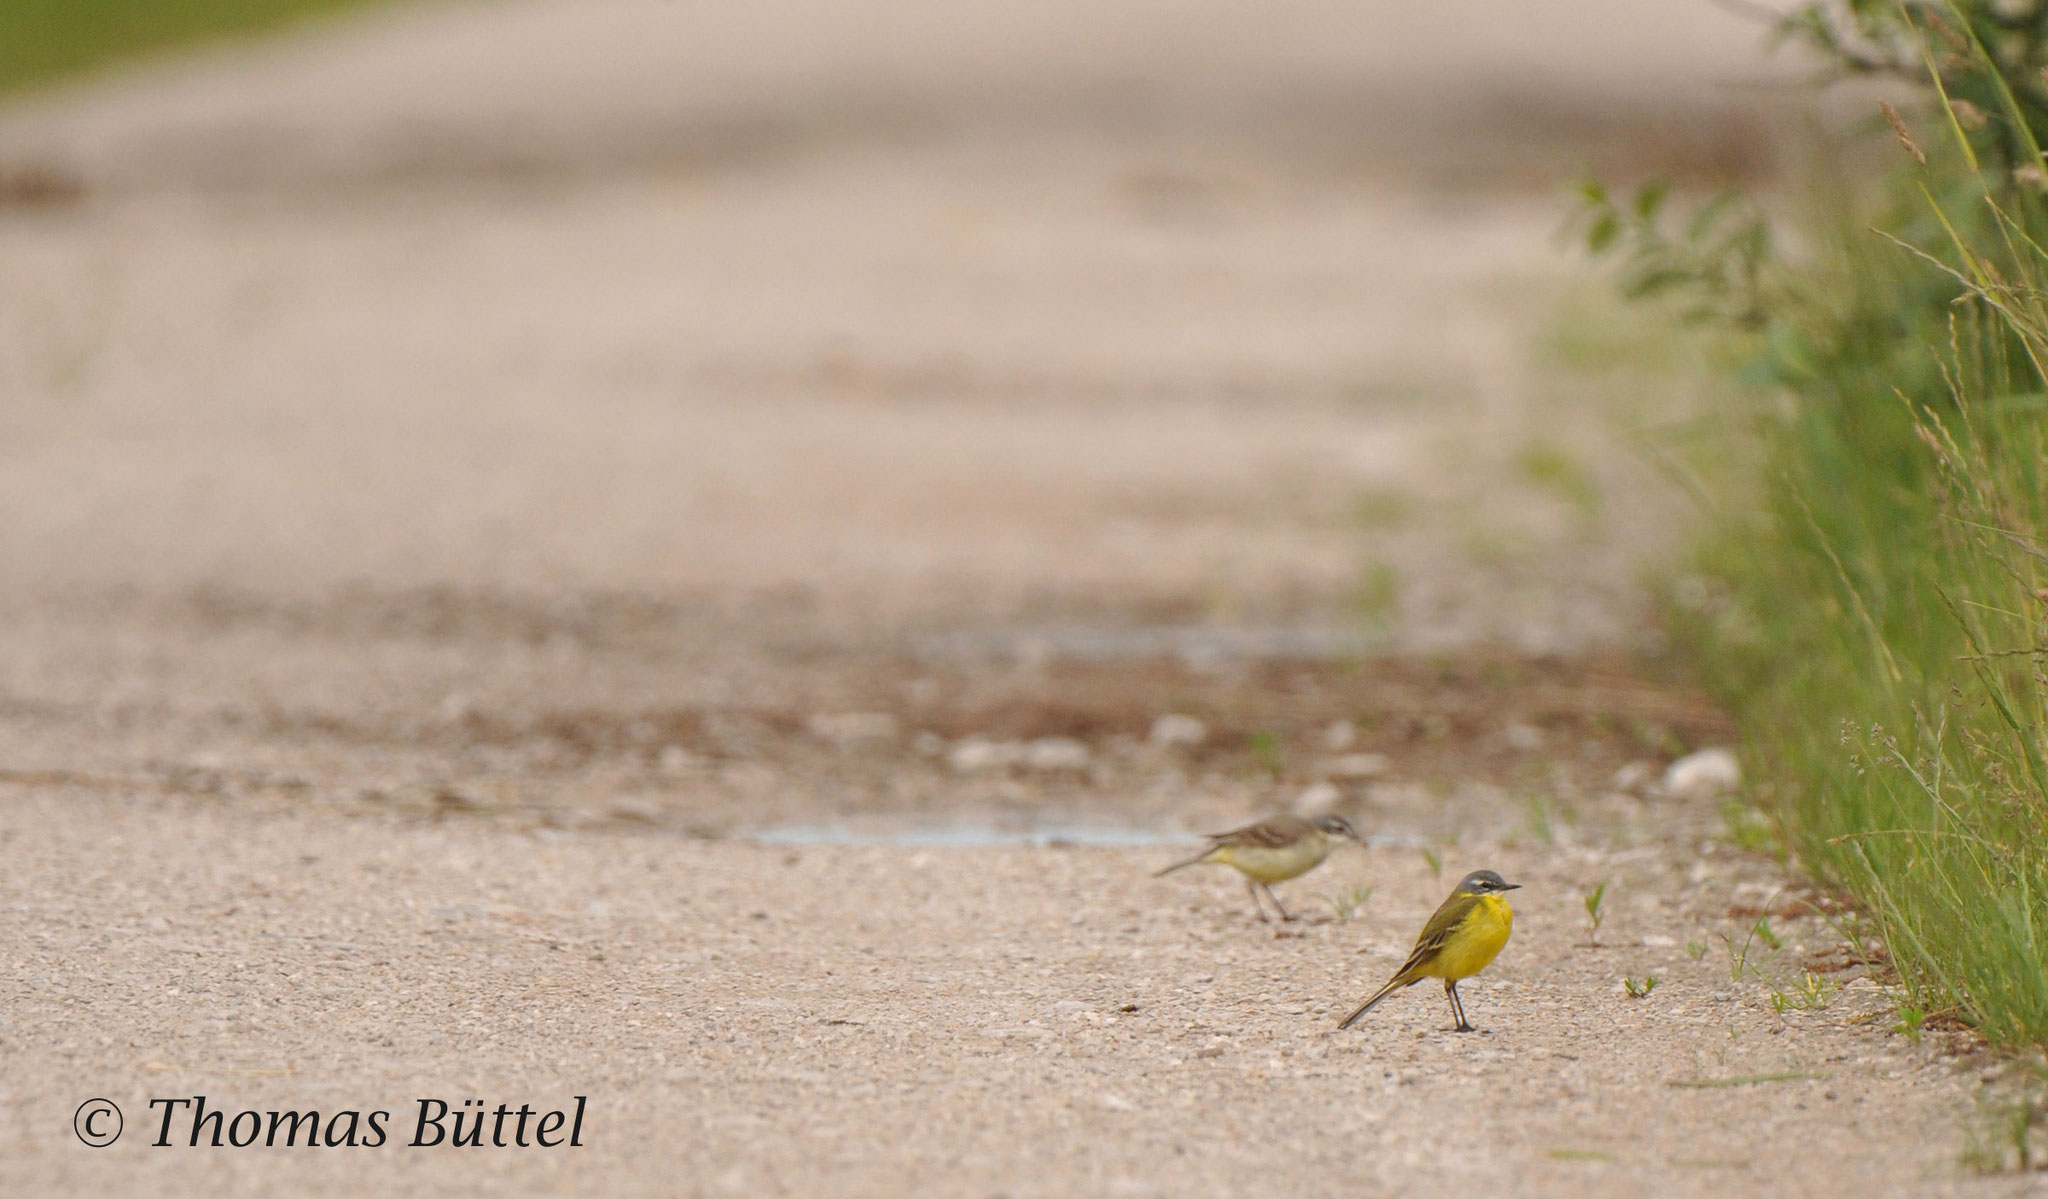 pair of Blue-headed Wagtails